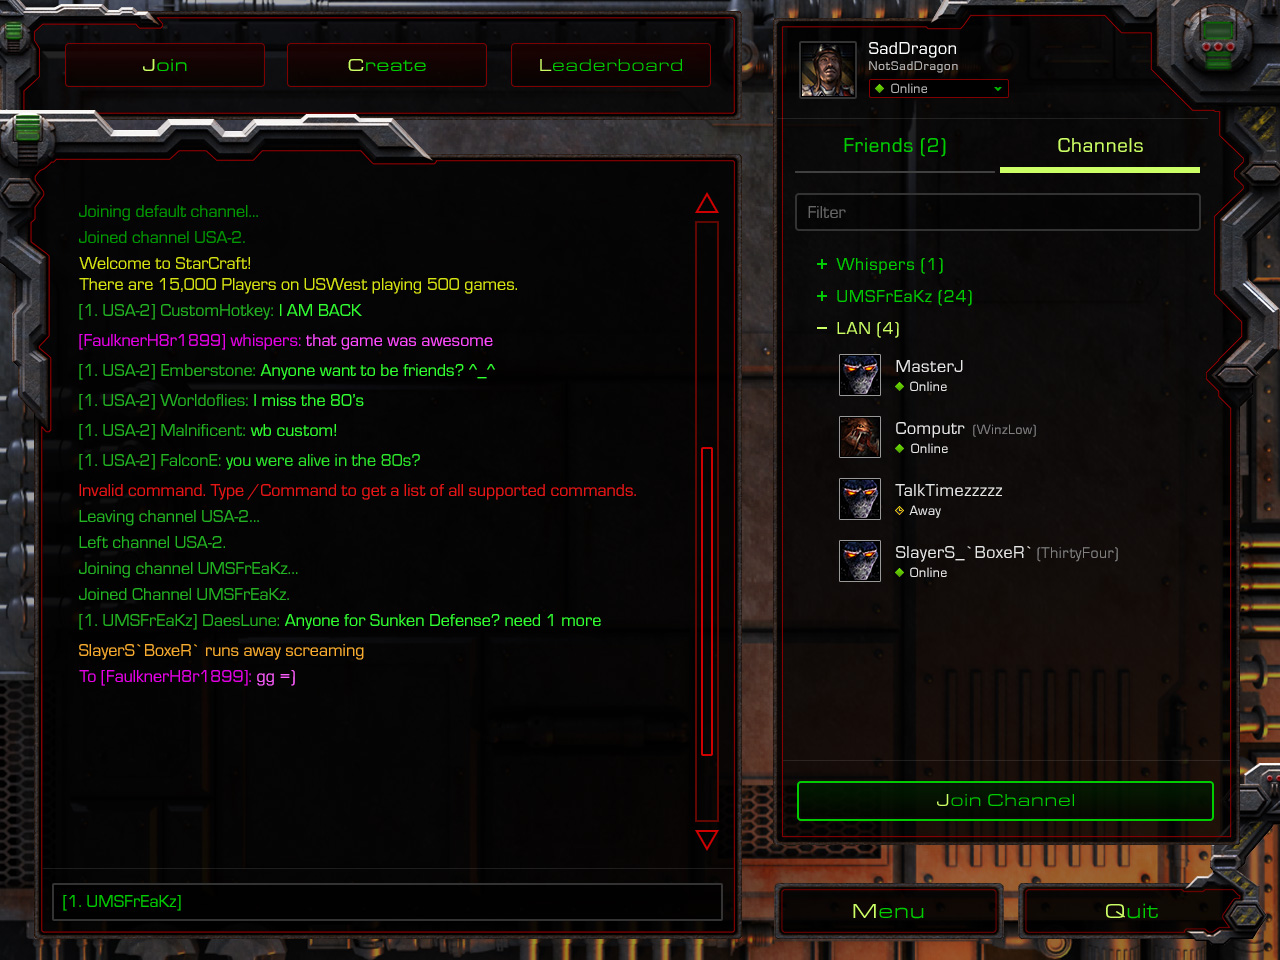 ca02f50e697 In addition to classic chat commands and functionality, StarCraft:  Remastered connects to your Blizzard Friends list, making it easier to find  and join ...